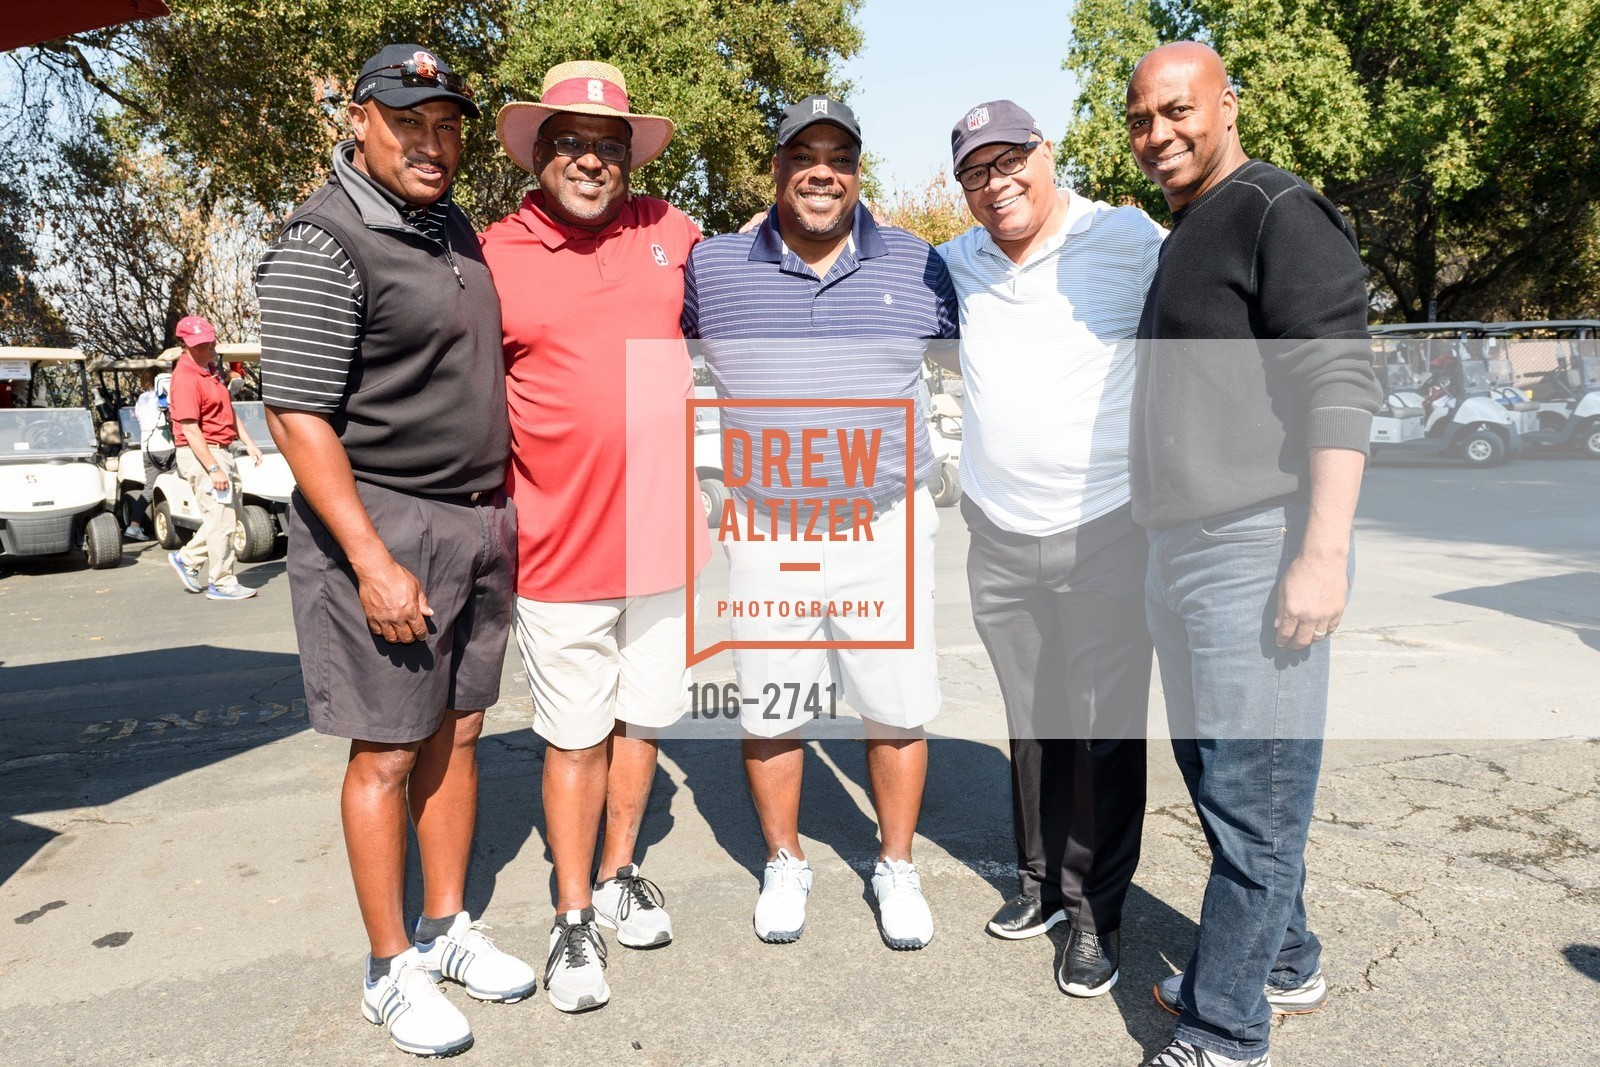 Eric Mullins, Michael Tolliver, Stan Gill, Jim Anderson, Thomas Henley, Photo #106-2741